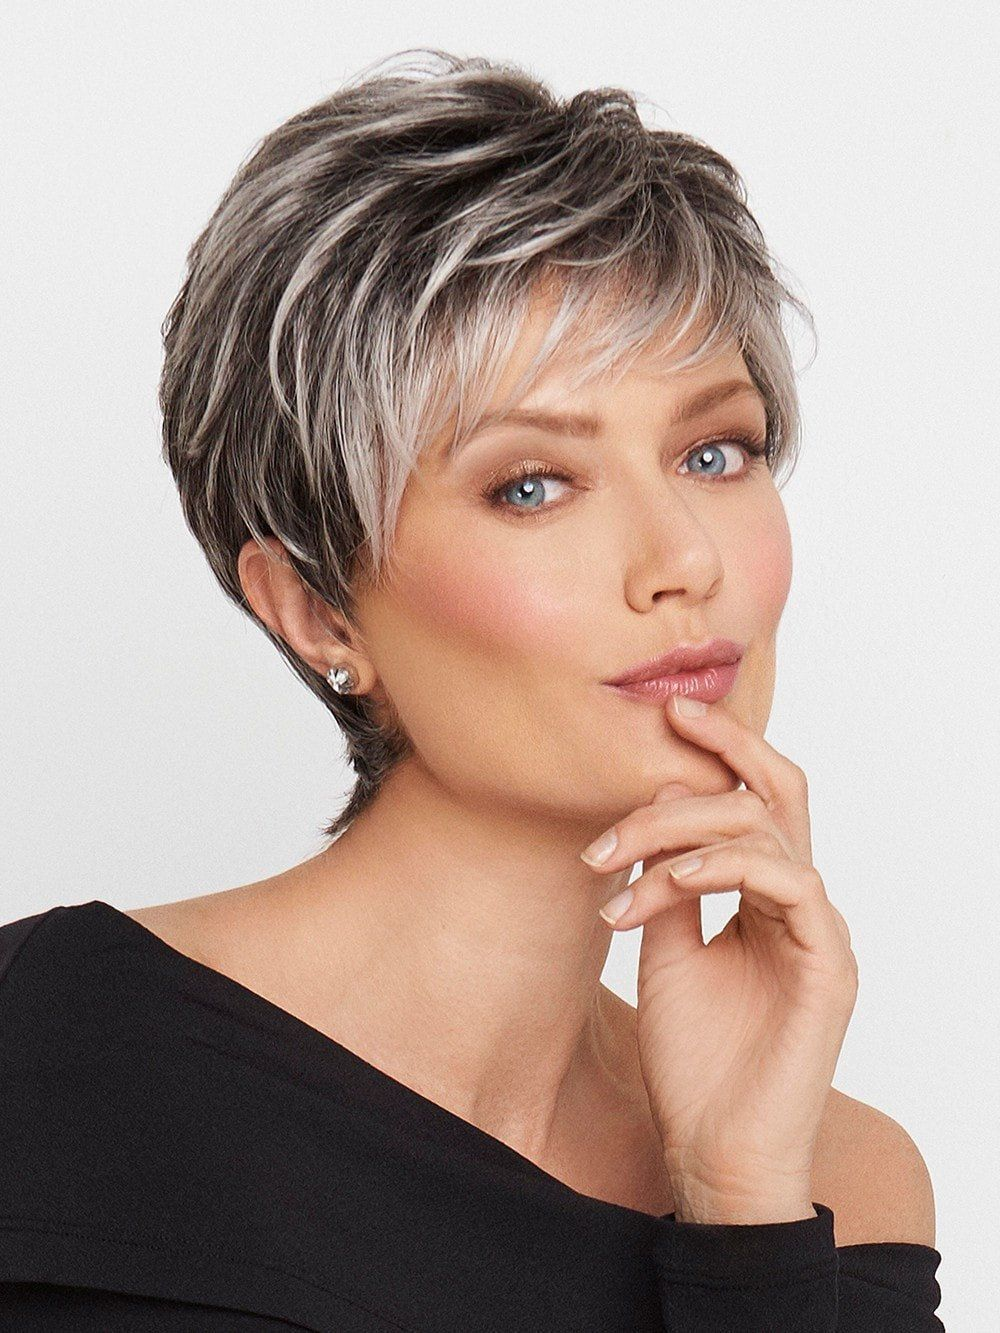 Crushing on casual synthetic lace front wig mono top short